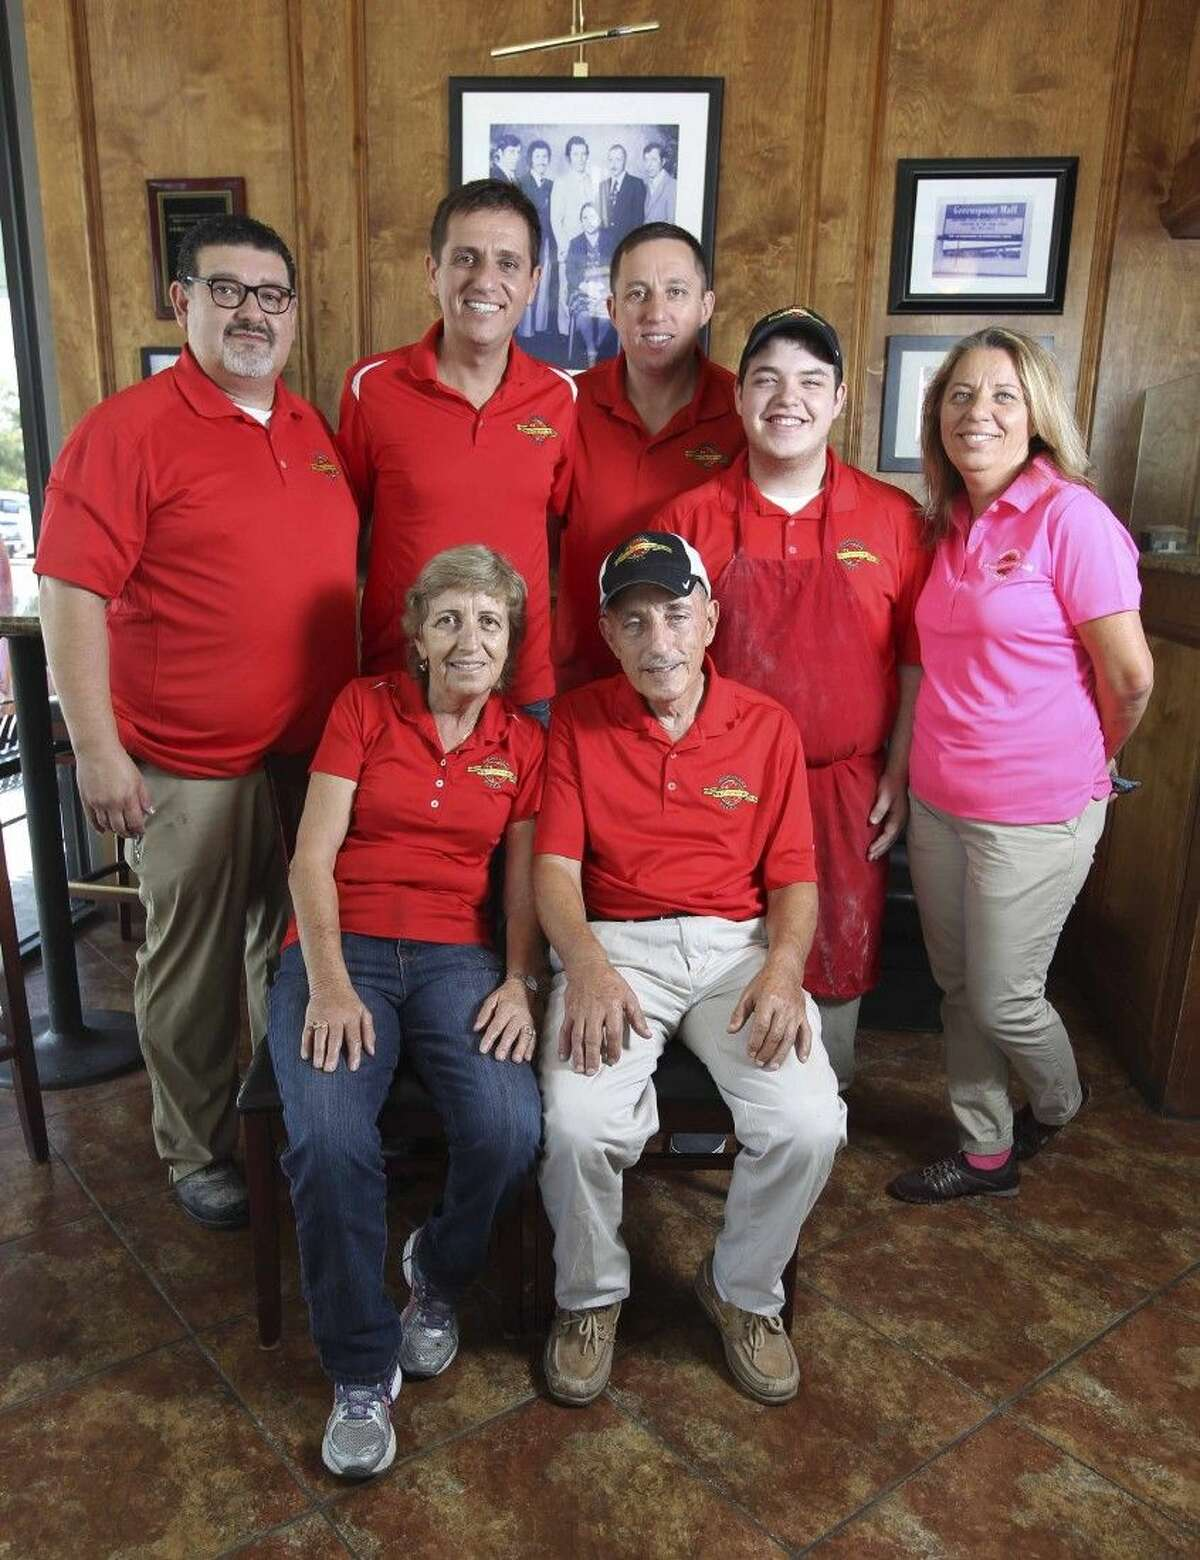 Pictured are the Bekiri family who founded the Brothers Pizza chain which has seven locations across Houston. They are all operated by members of the Bekiri family. Pictured seated are Zima and Haki Bekiri. Pictured standing from left are Jesse Lira, Manny Bekiri, Jimmy Bekiri, Noah Lira and Lima Bekiri Lira. Jesse and Lima Bekiri Lira own and operate the Sterling Ridge location of Brothers Pizza in The Woodlands. Her parents are Zima and Haki Bekiri.